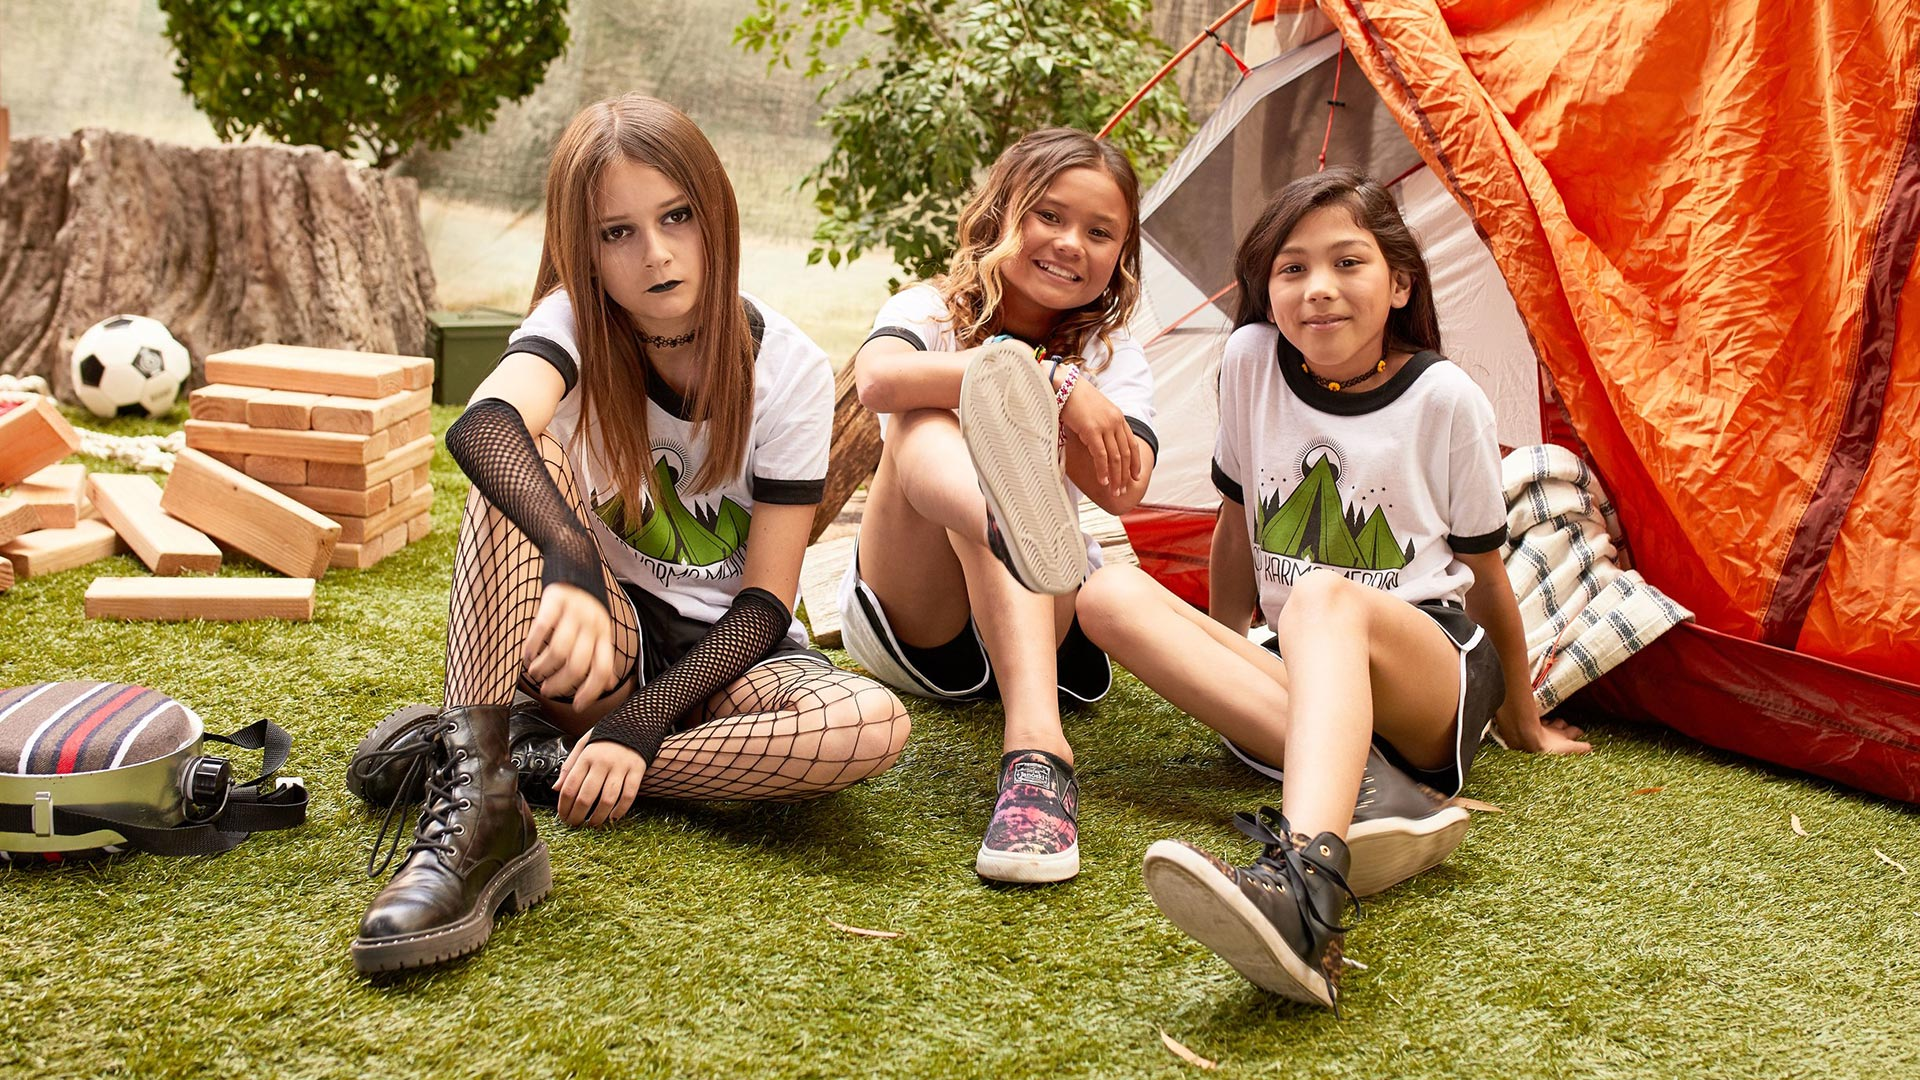 Sophie Ferguson: Dress Like Camp Karma Meadow Goth Girl - Goth Girl's look has gone through some changes (never forget G-Baby). As we speak, she's keeping it goth while rocking a camp uniform. Get her goth camper look in four easy pieces!